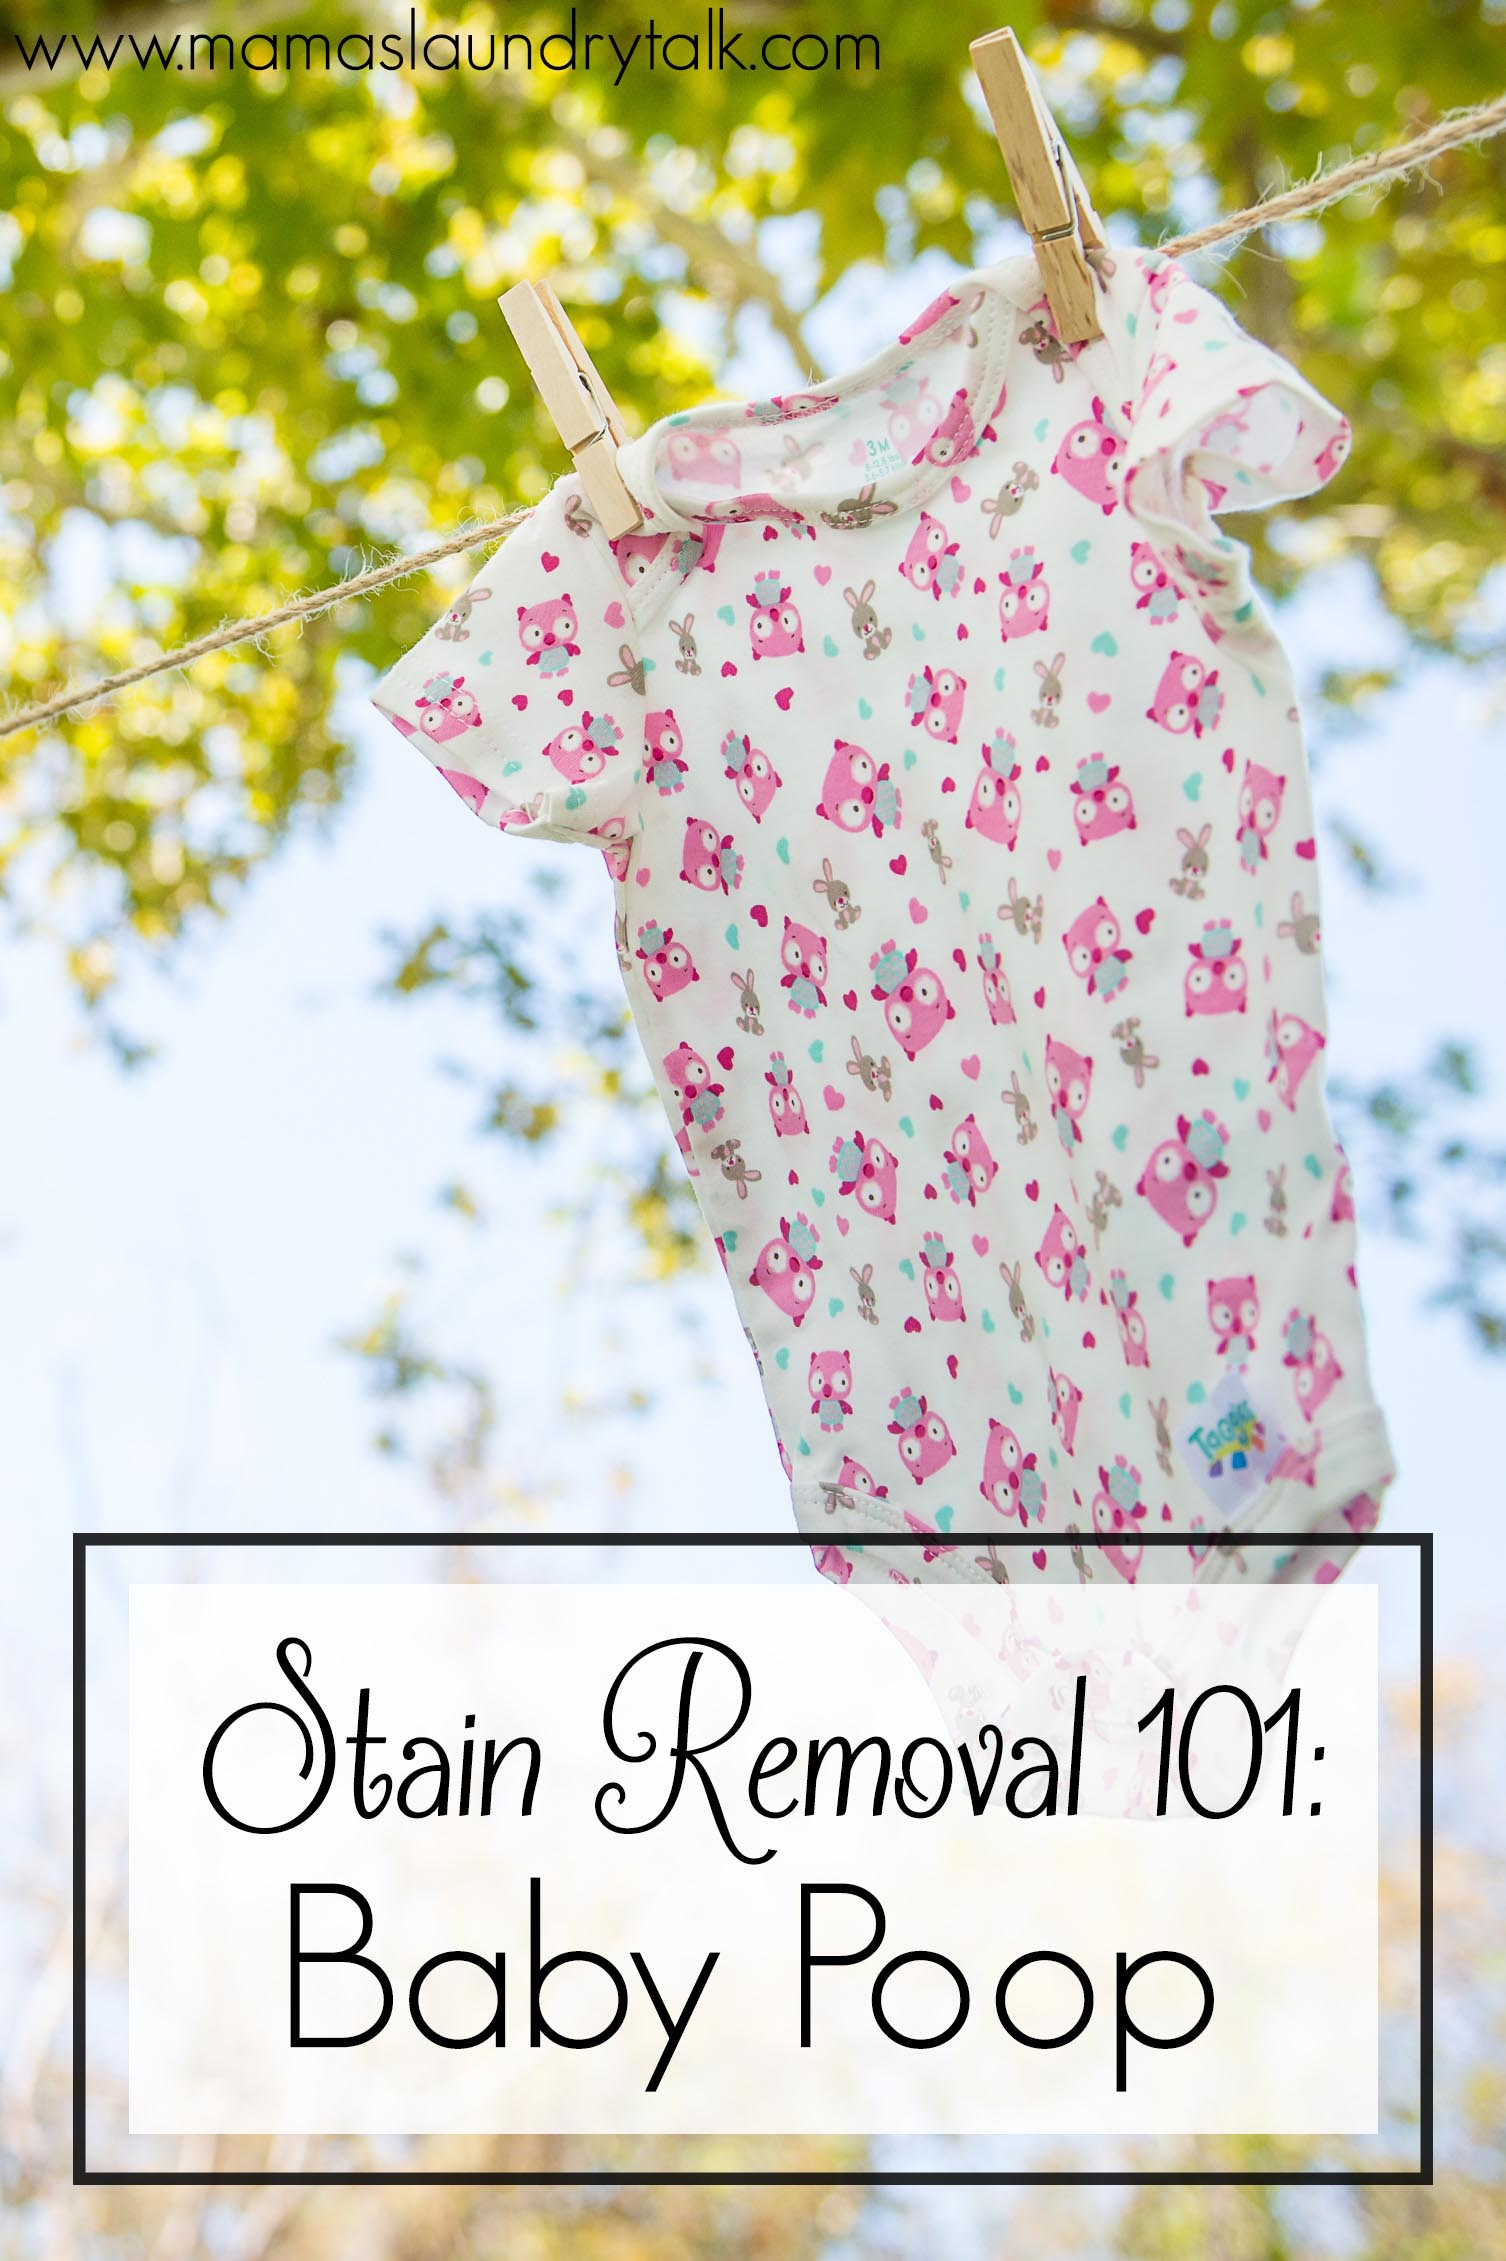 Stain Removal 101: Baby Poop